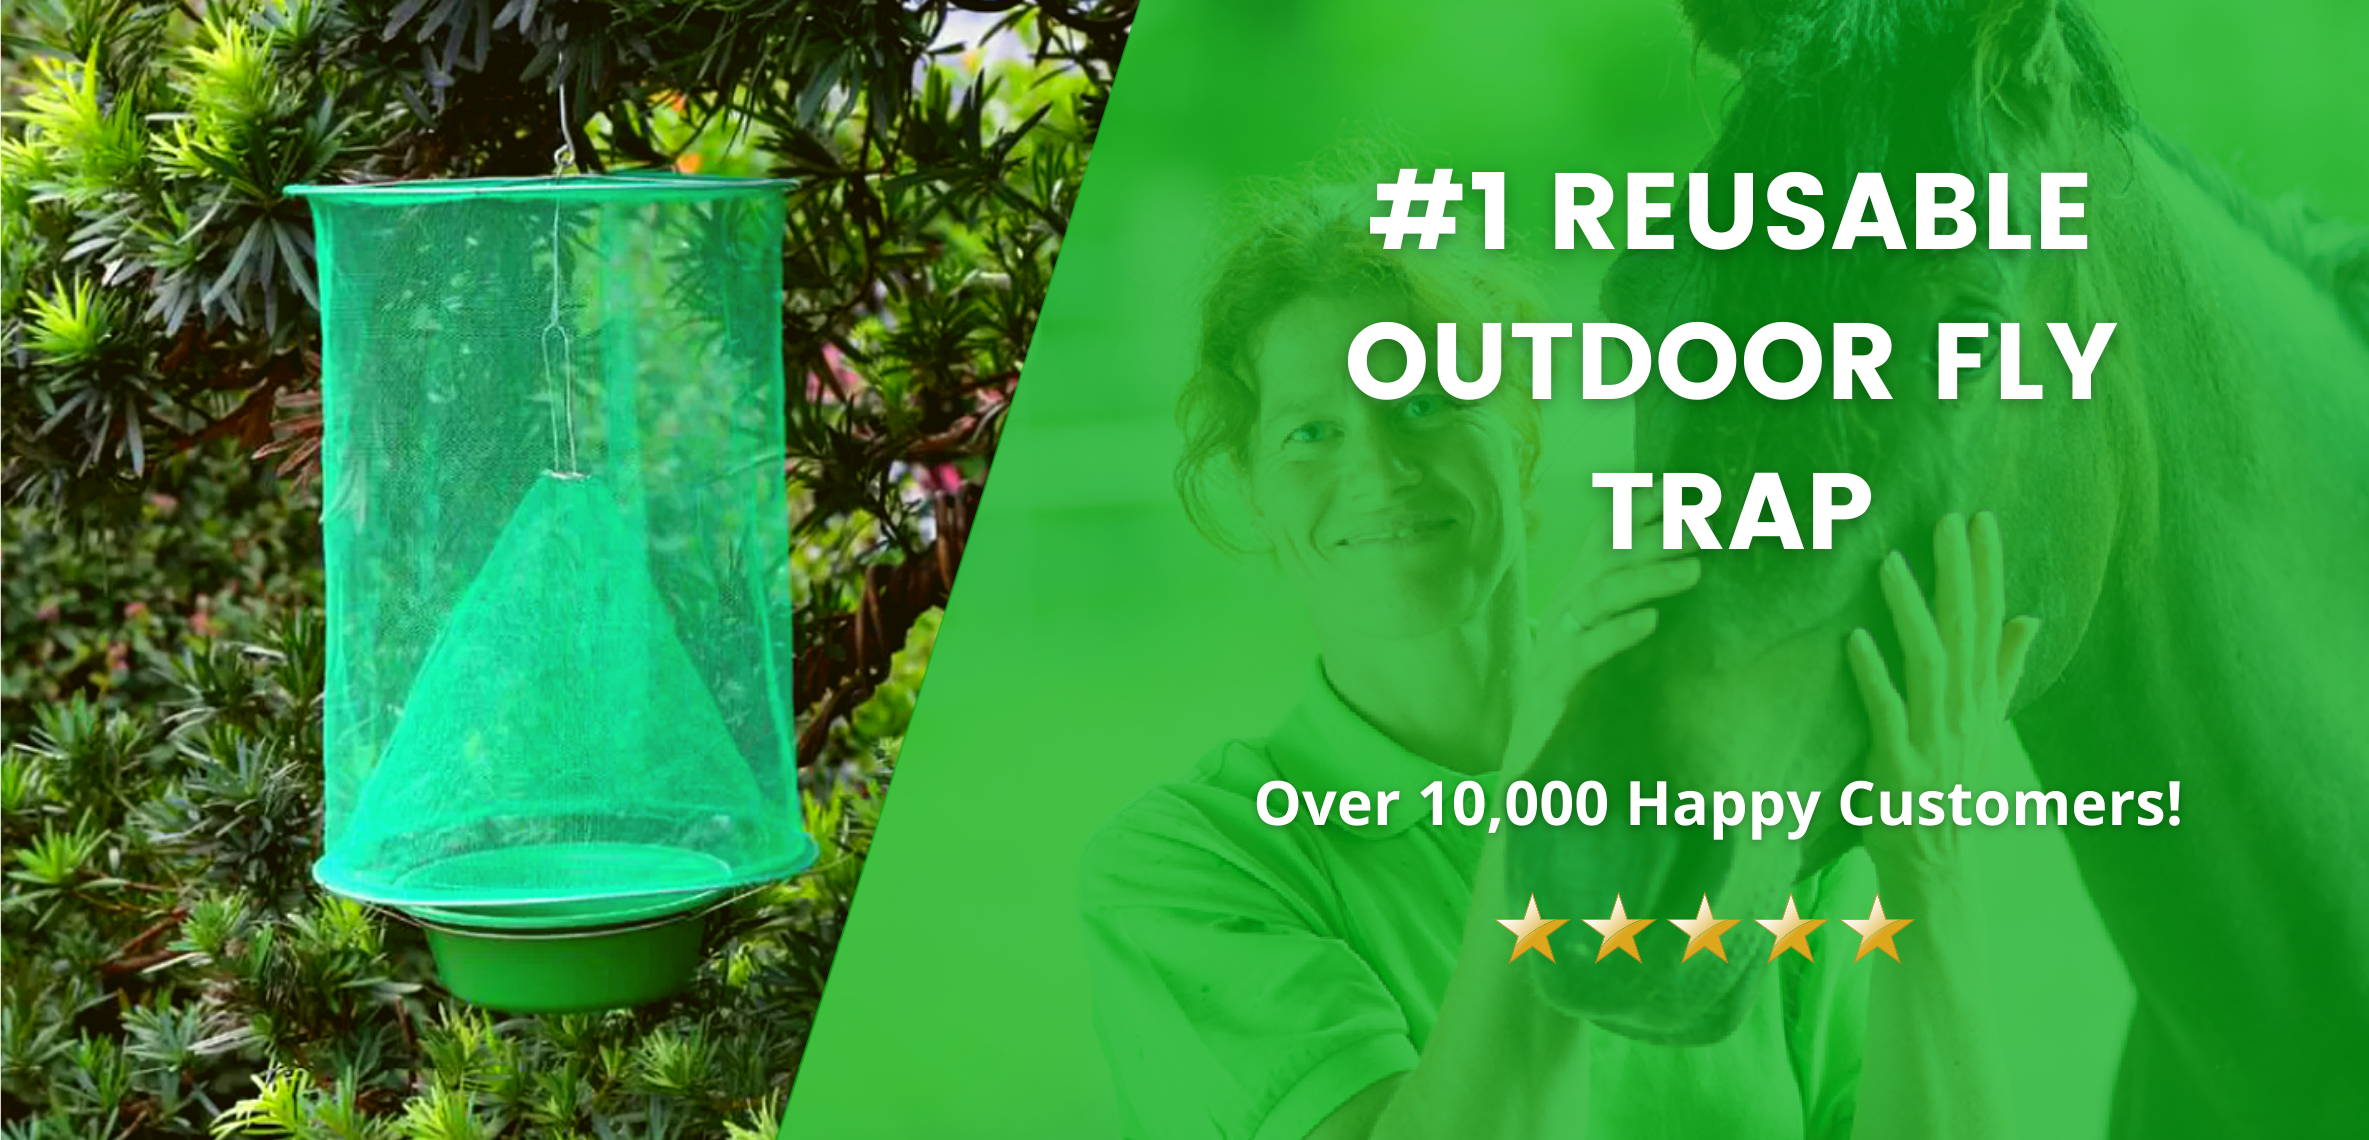 Best Reusable Fly Trap For Outdoors.